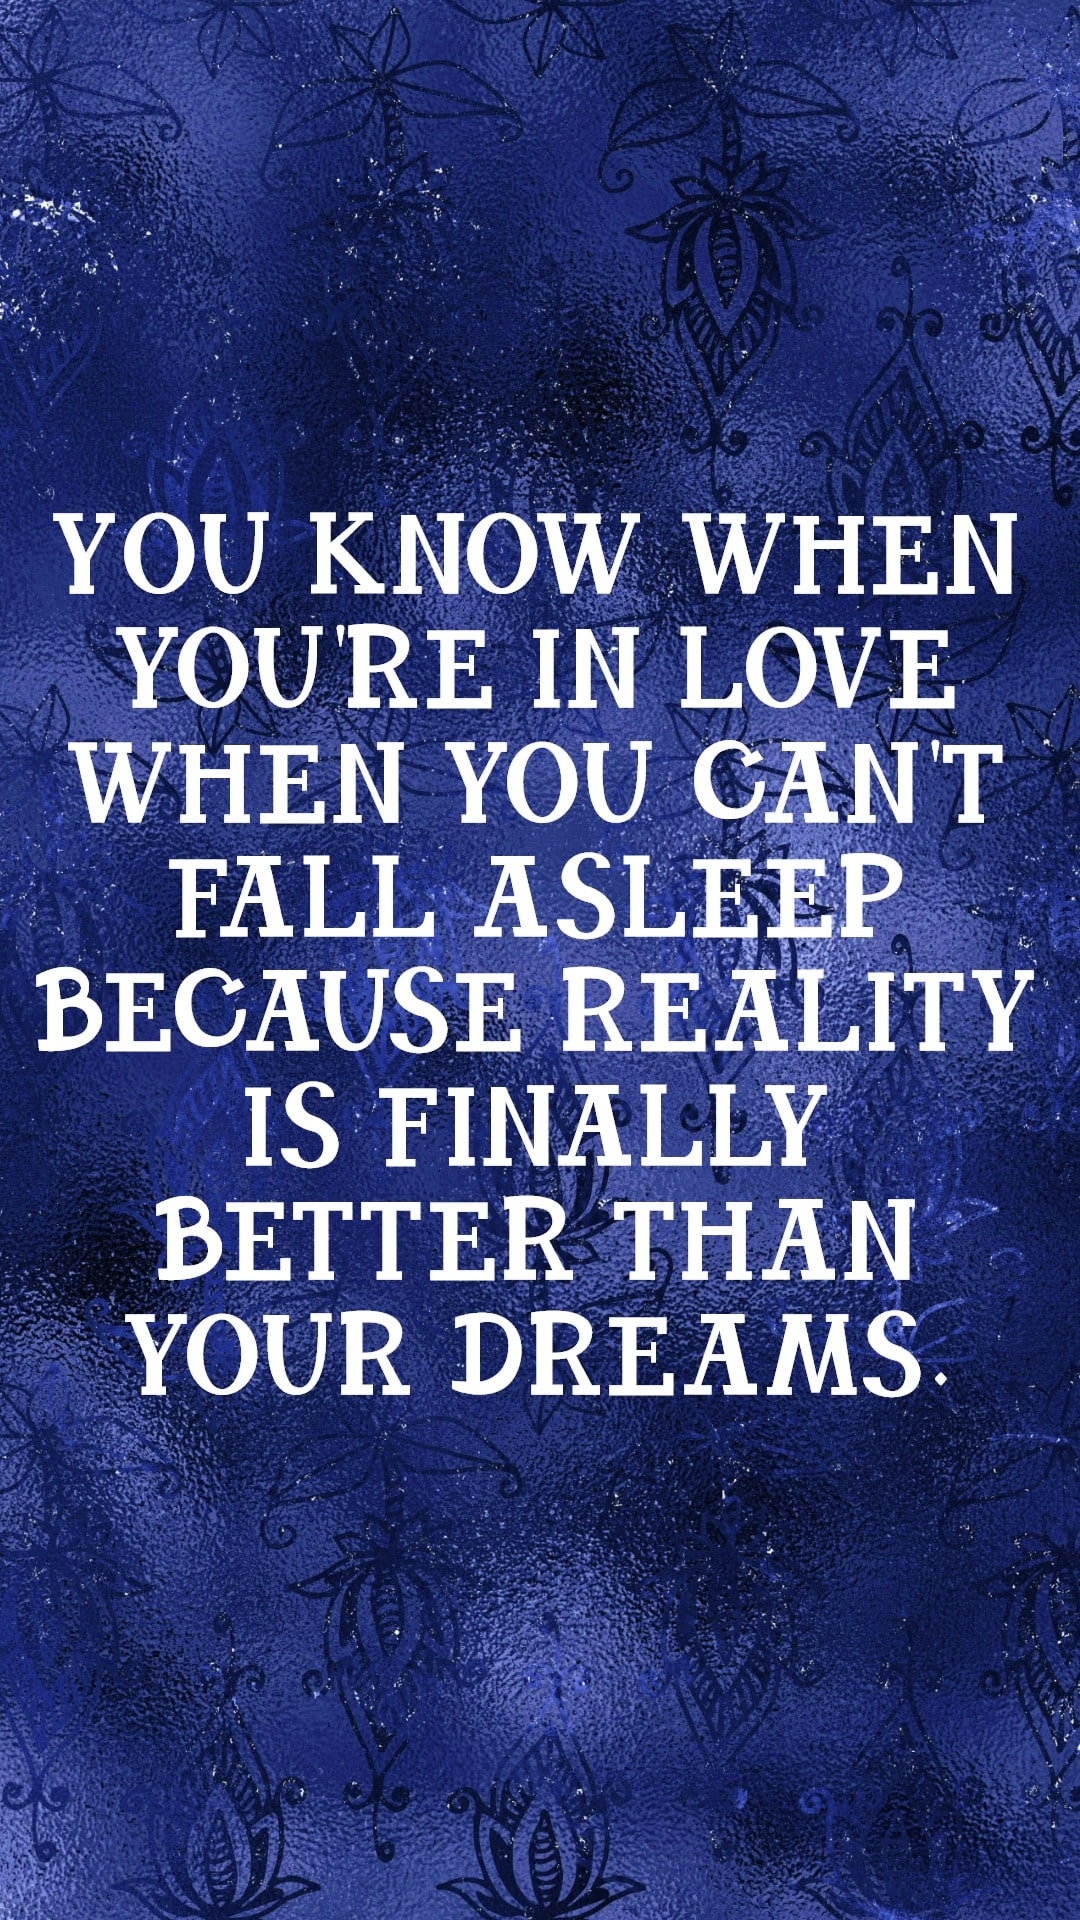 You know when you're in love because you can't fall asleep because reality is finally better than you dreams.